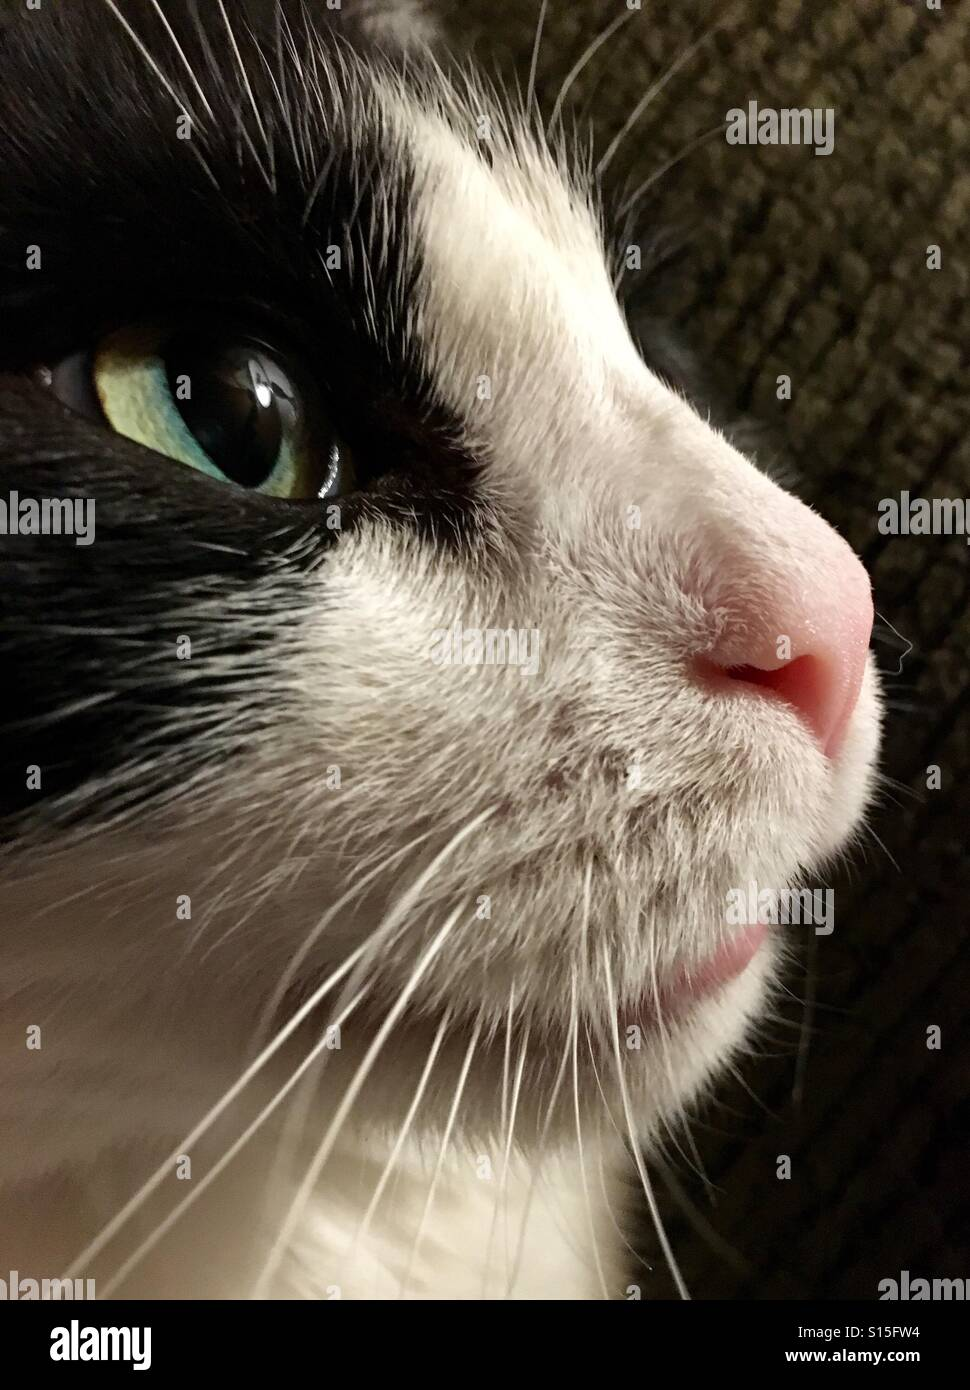 Cat face - Stock Image